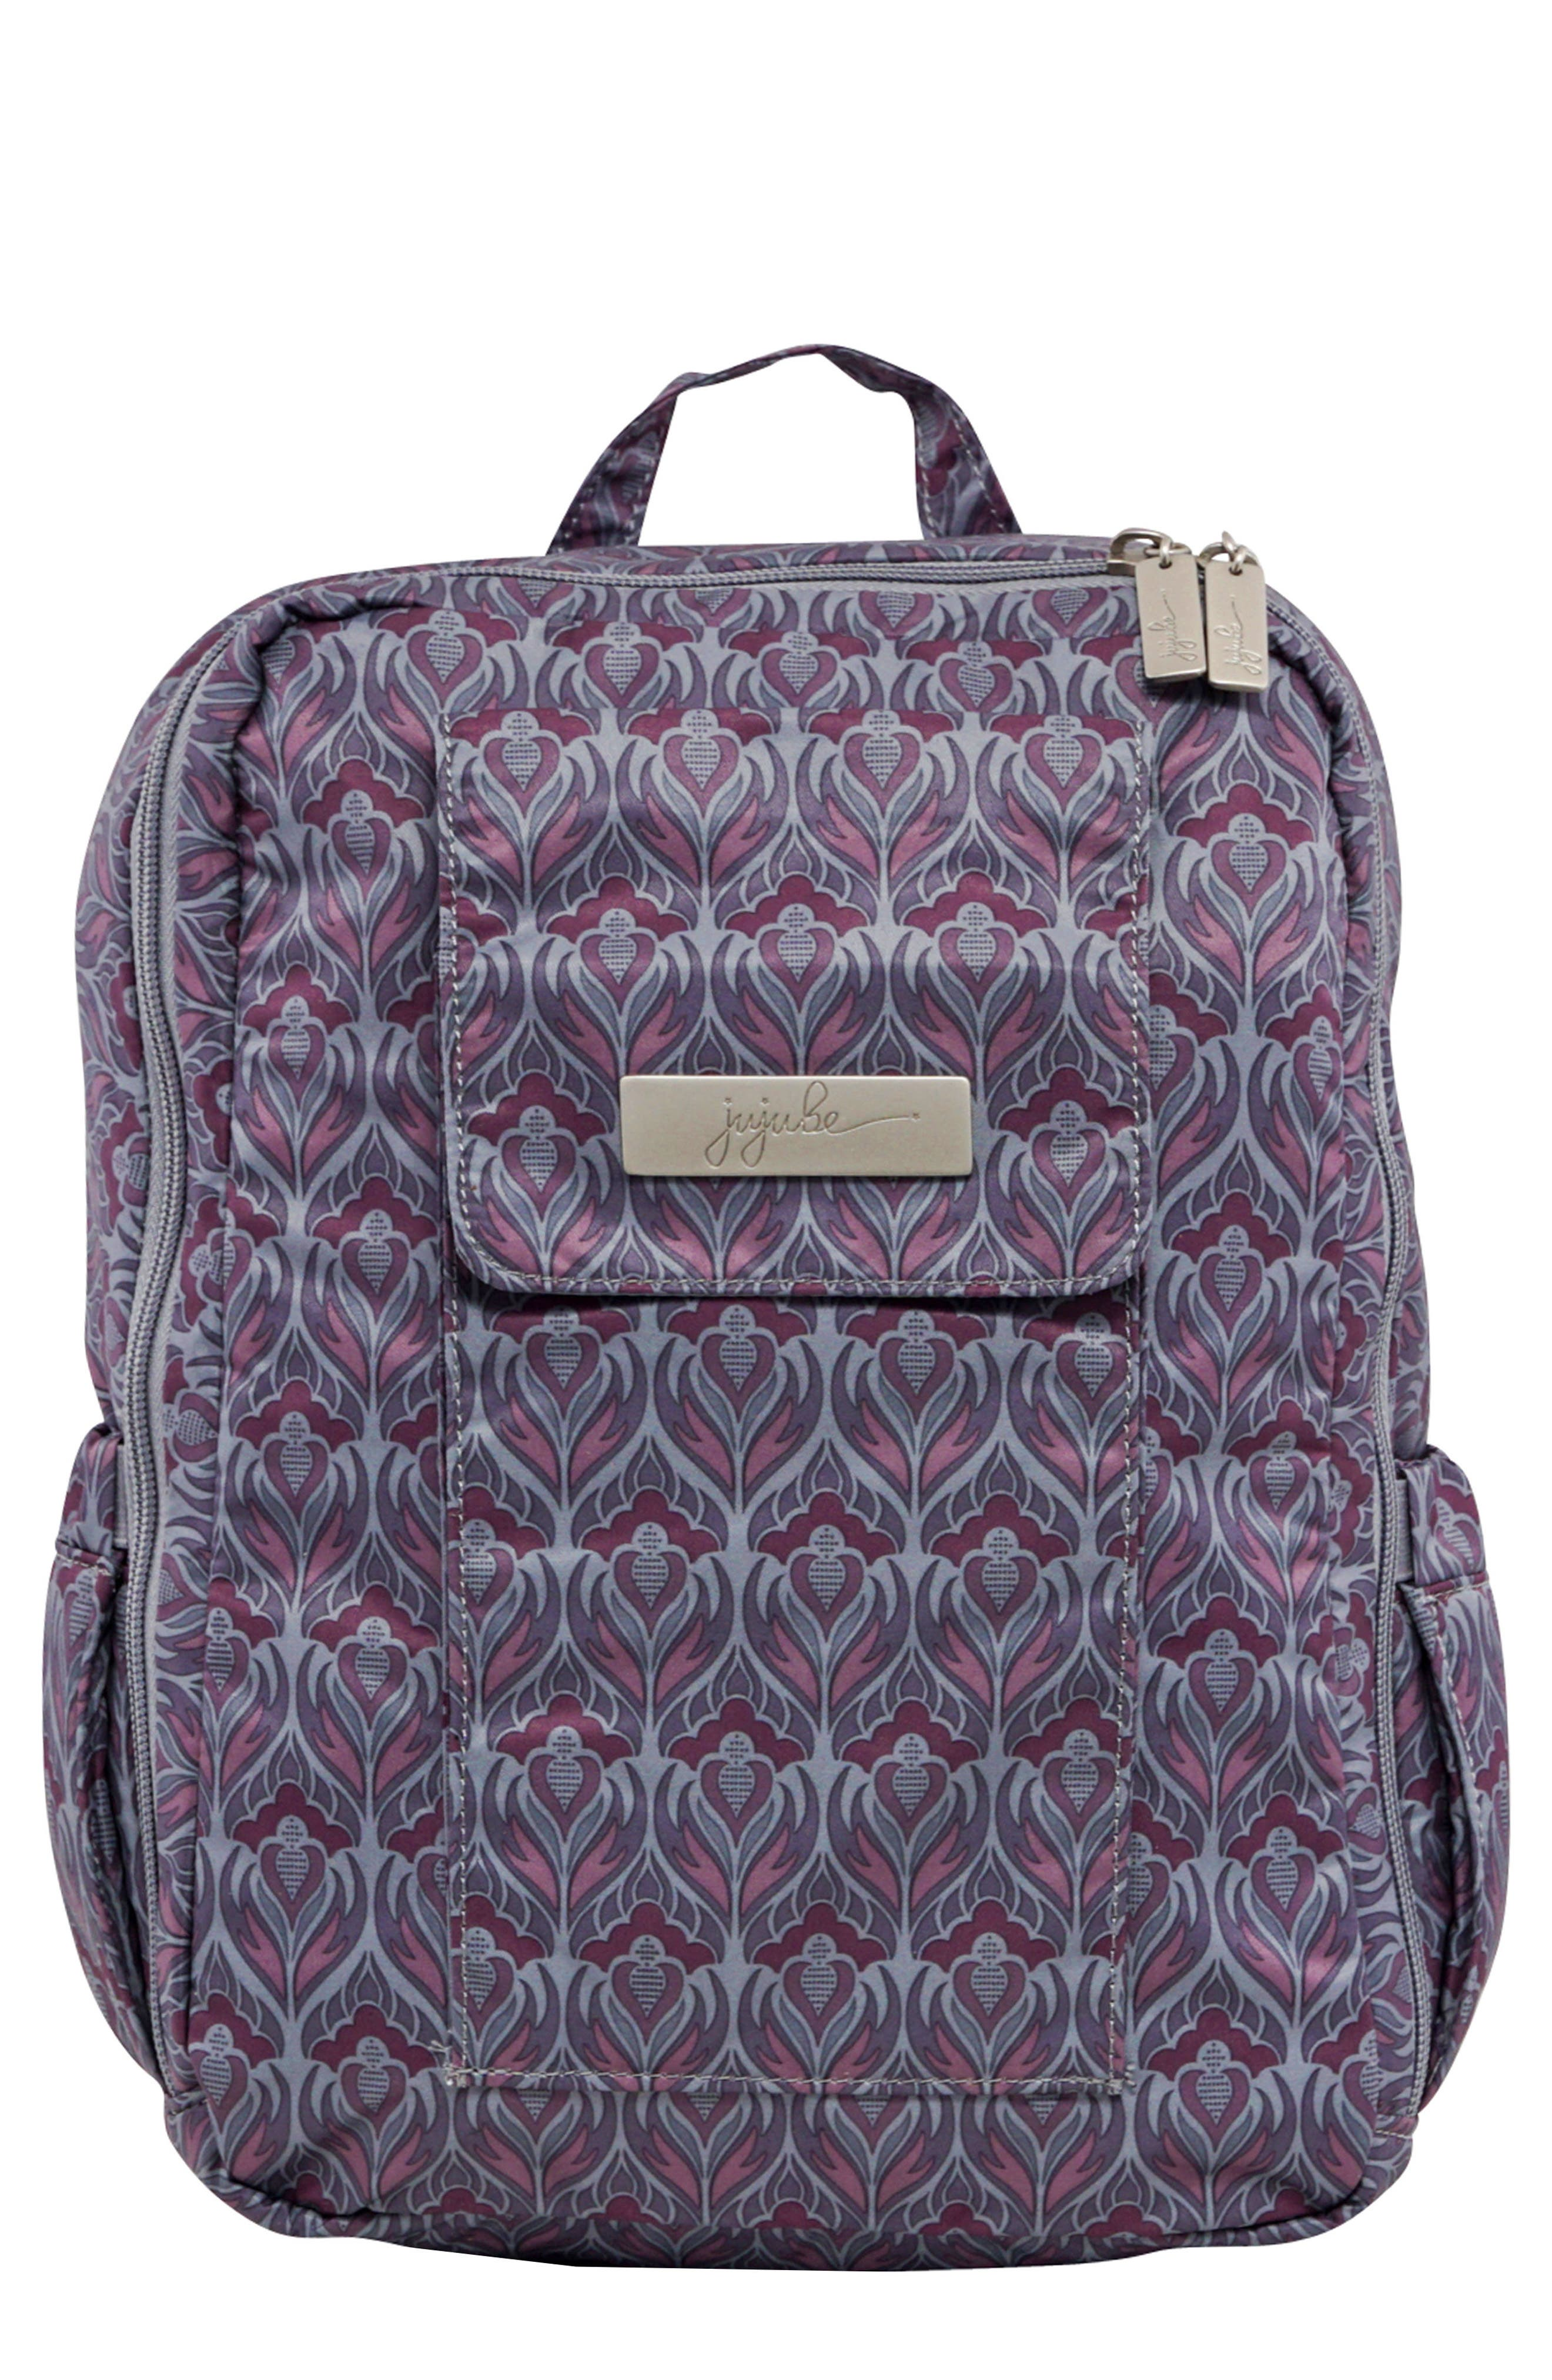 'Mini Be' Backpack,                             Main thumbnail 1, color,                             Amethyst Ice